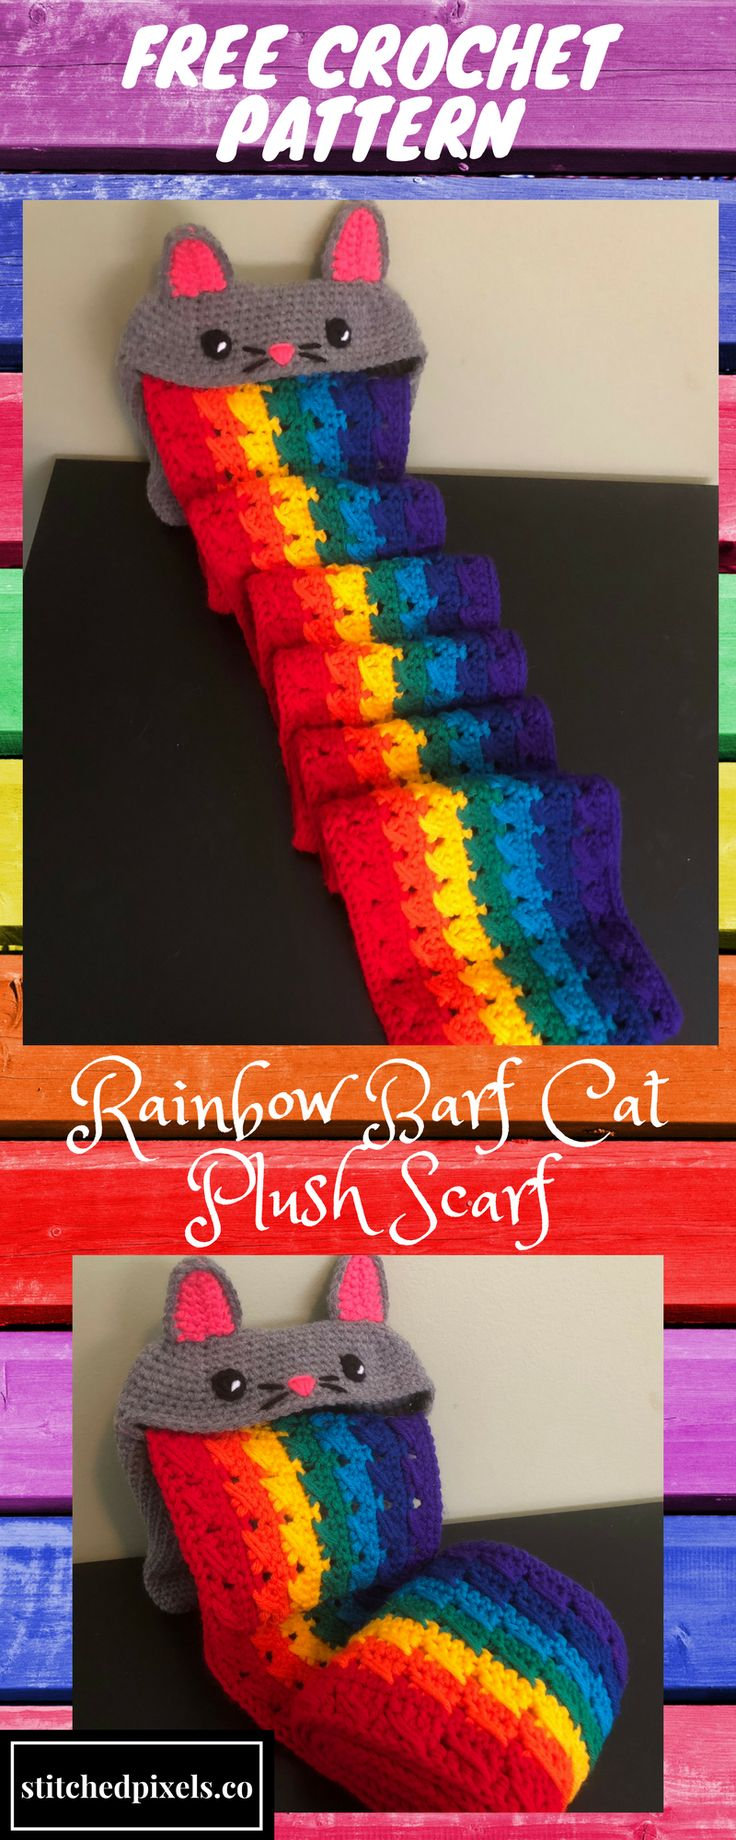 Part cat amigurumi, part rainbow scarf, all adorable! Use this free crochet pattern to make your own Rainbow Barf Cat Plush Scarf.